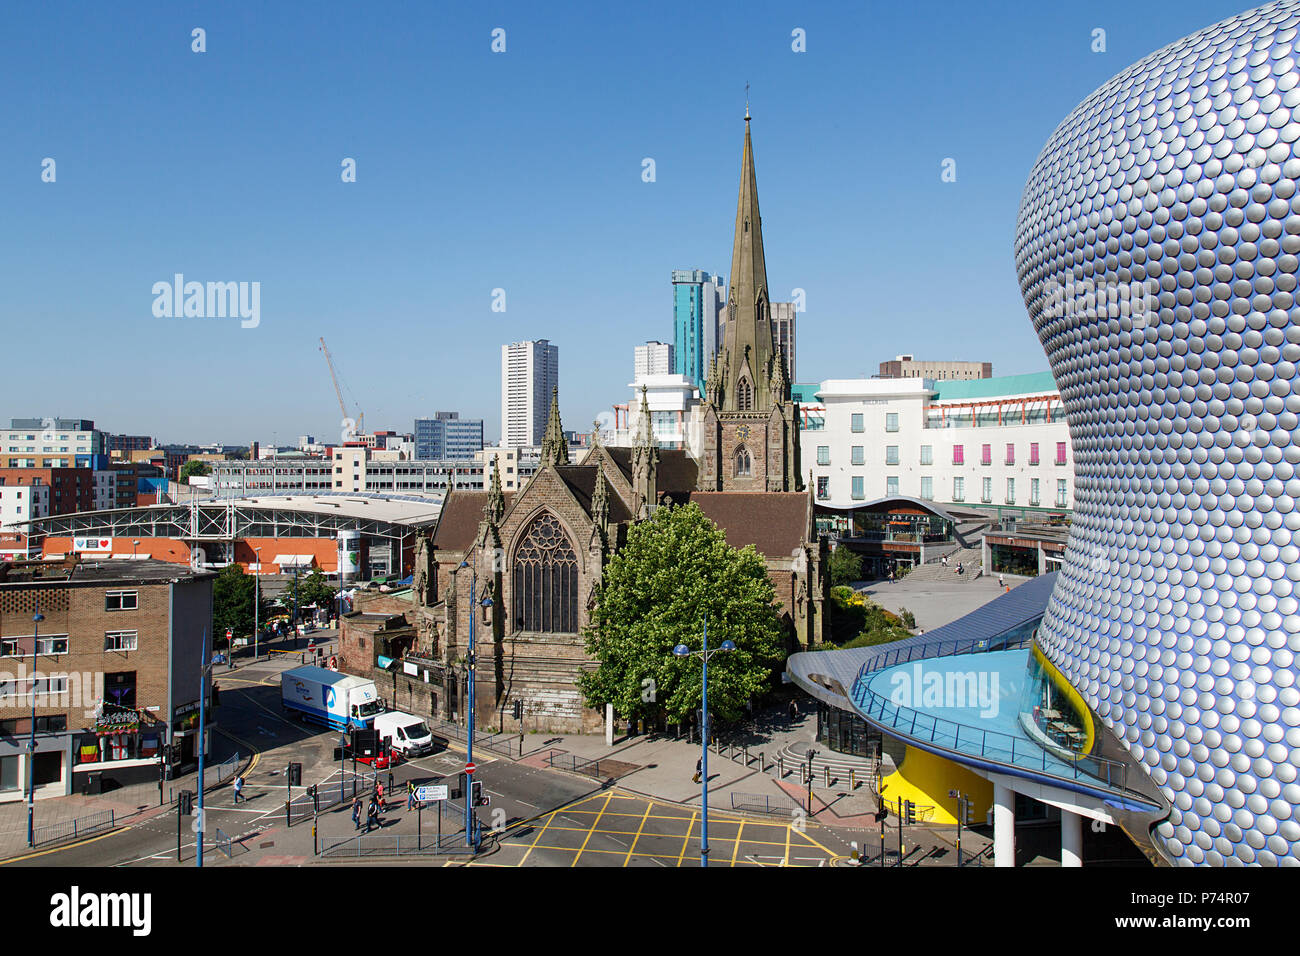 Birmingham, UK: June 29, 2018: The church of St Martin in the Bull Ring is located between the Bull Ring and the markets area. - Stock Image